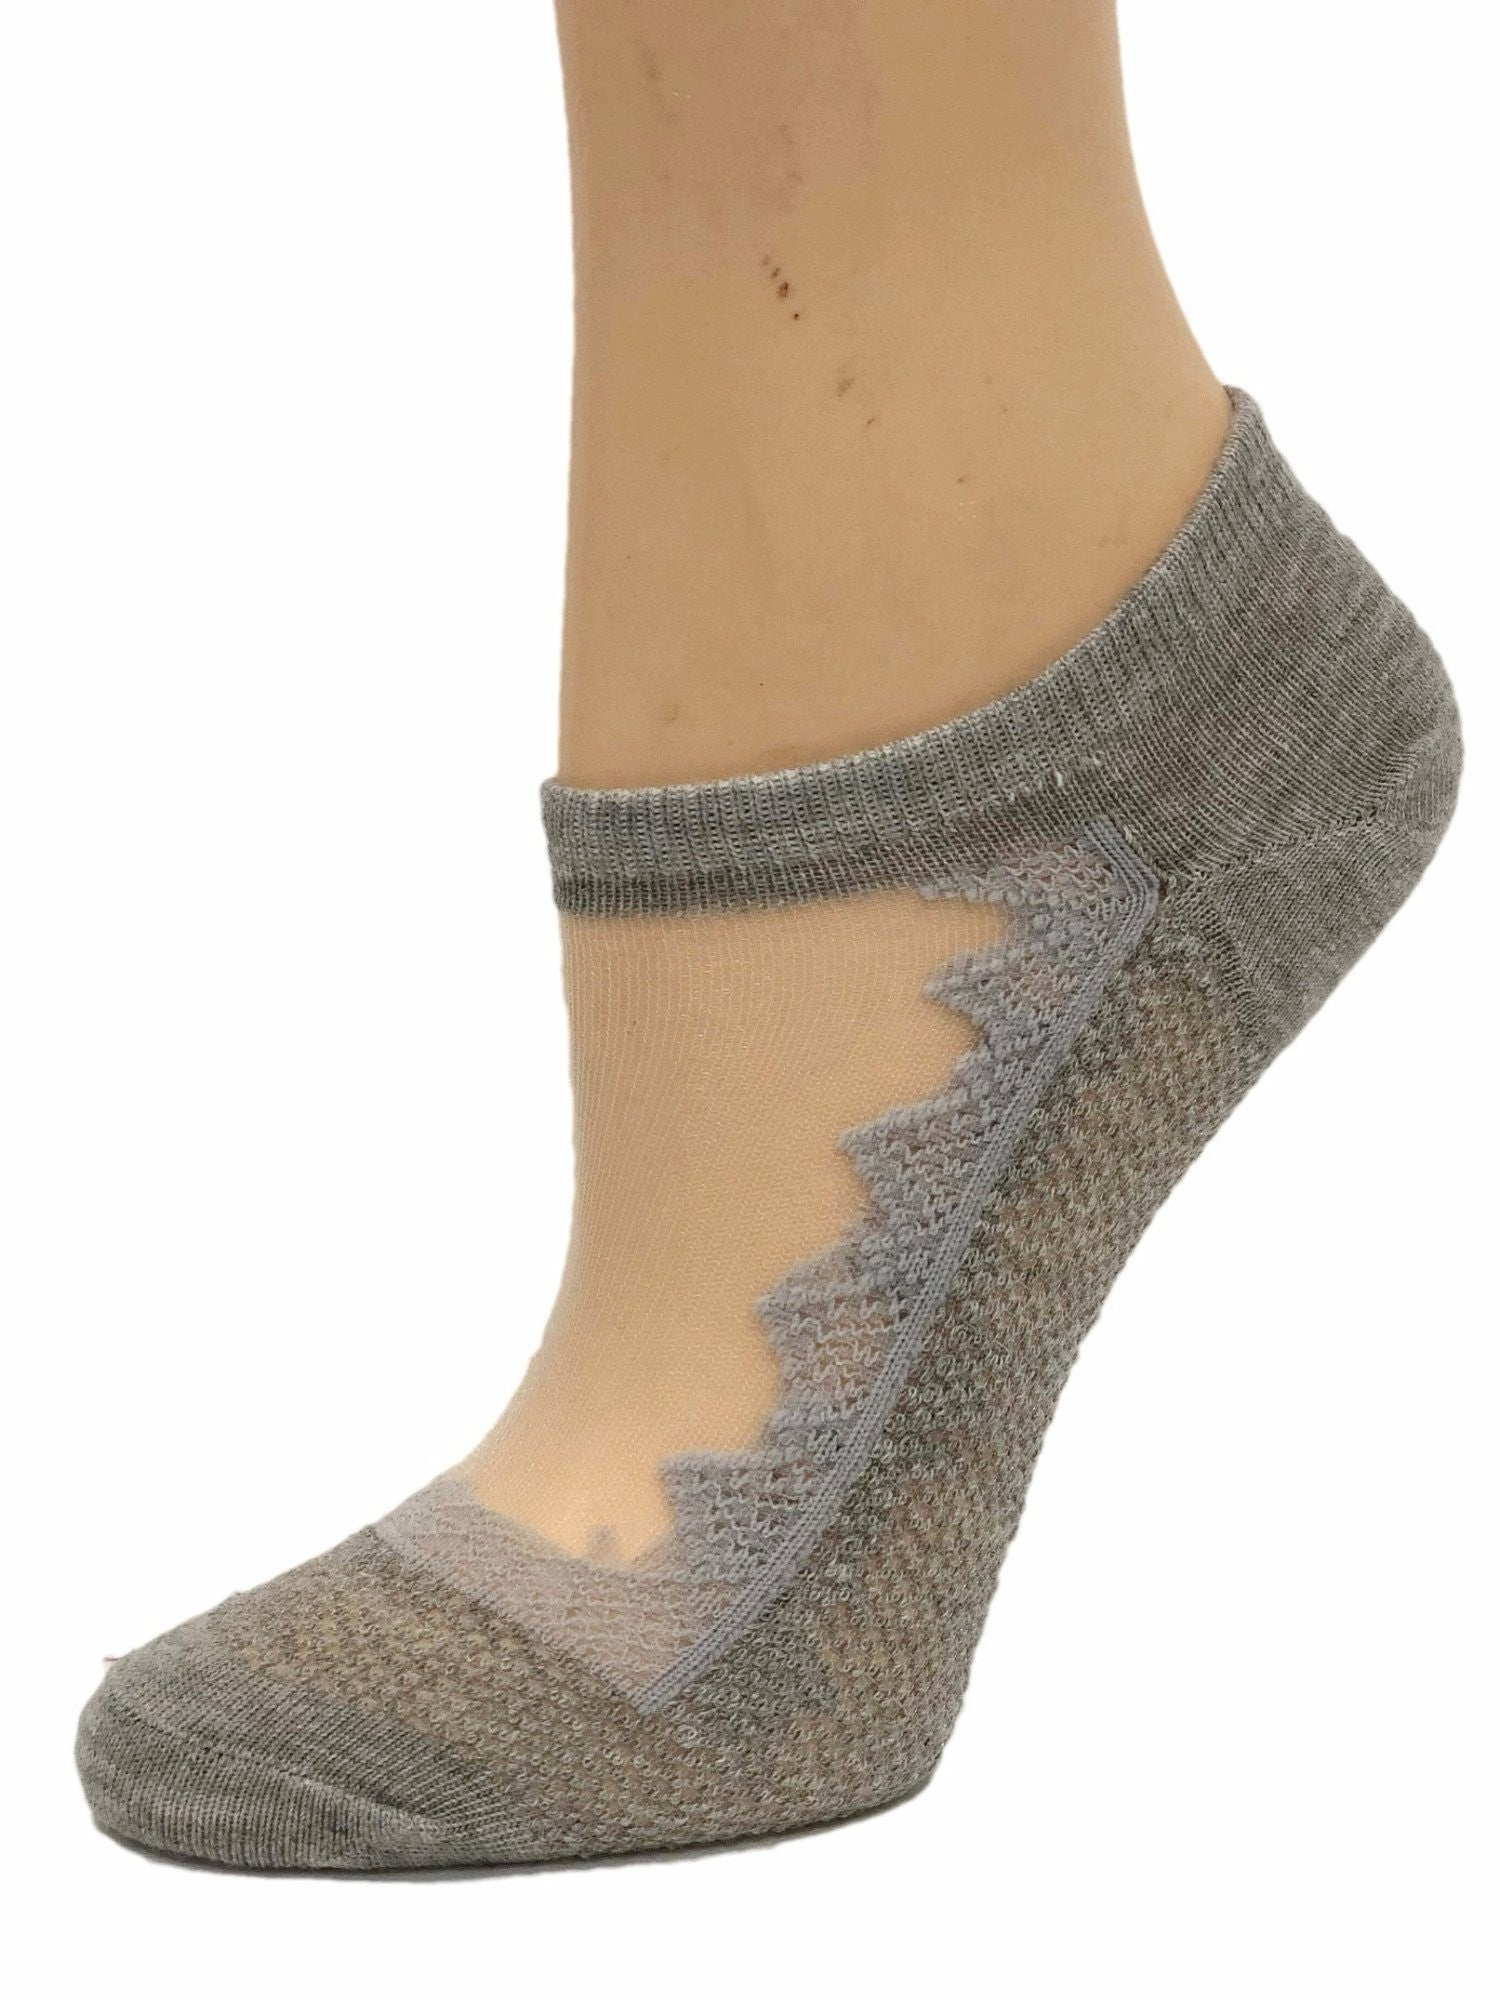 Beautiful Grey Patterned Ankle Sheer Socks - Global Trendz Fashion®